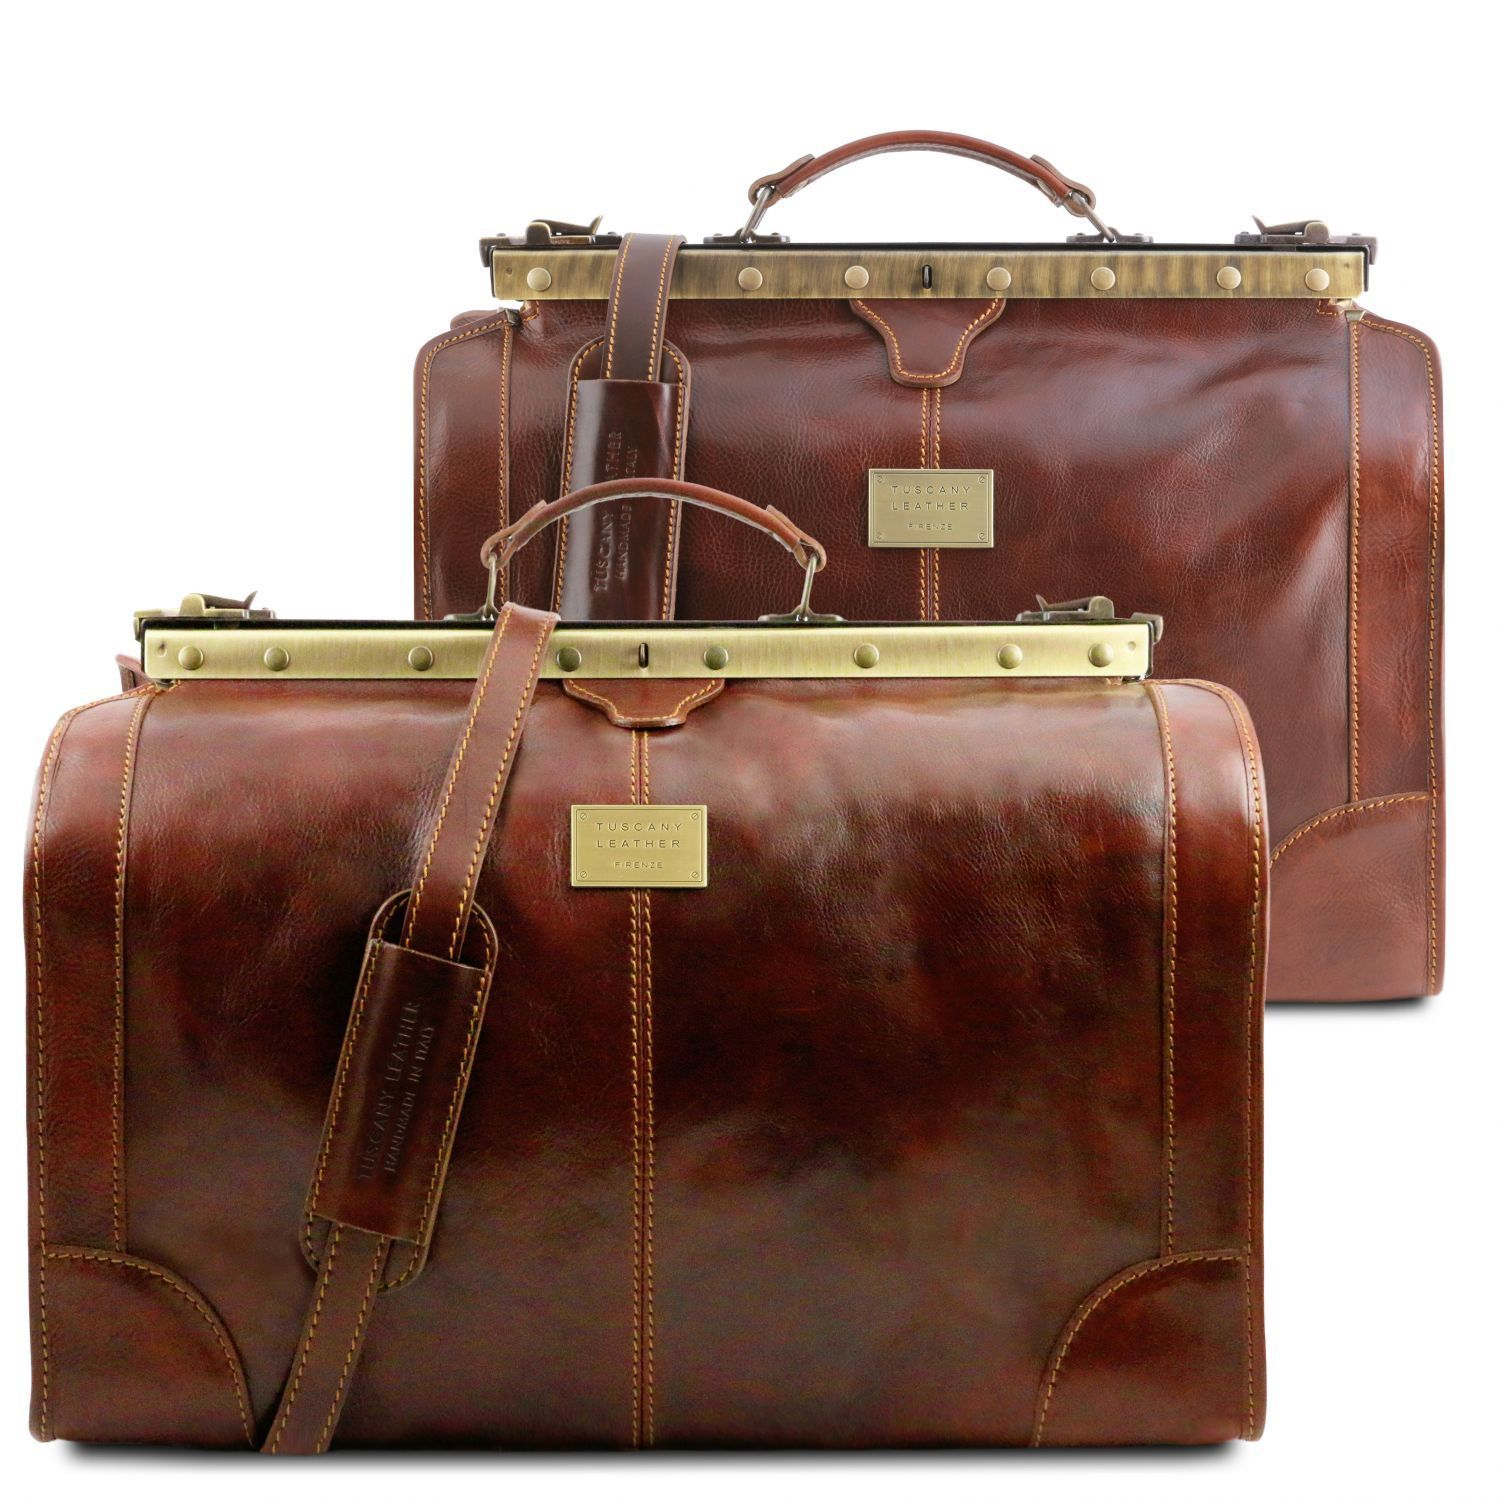 Tuscany Leather 'Madrid' Travel Set Gladstone Bags